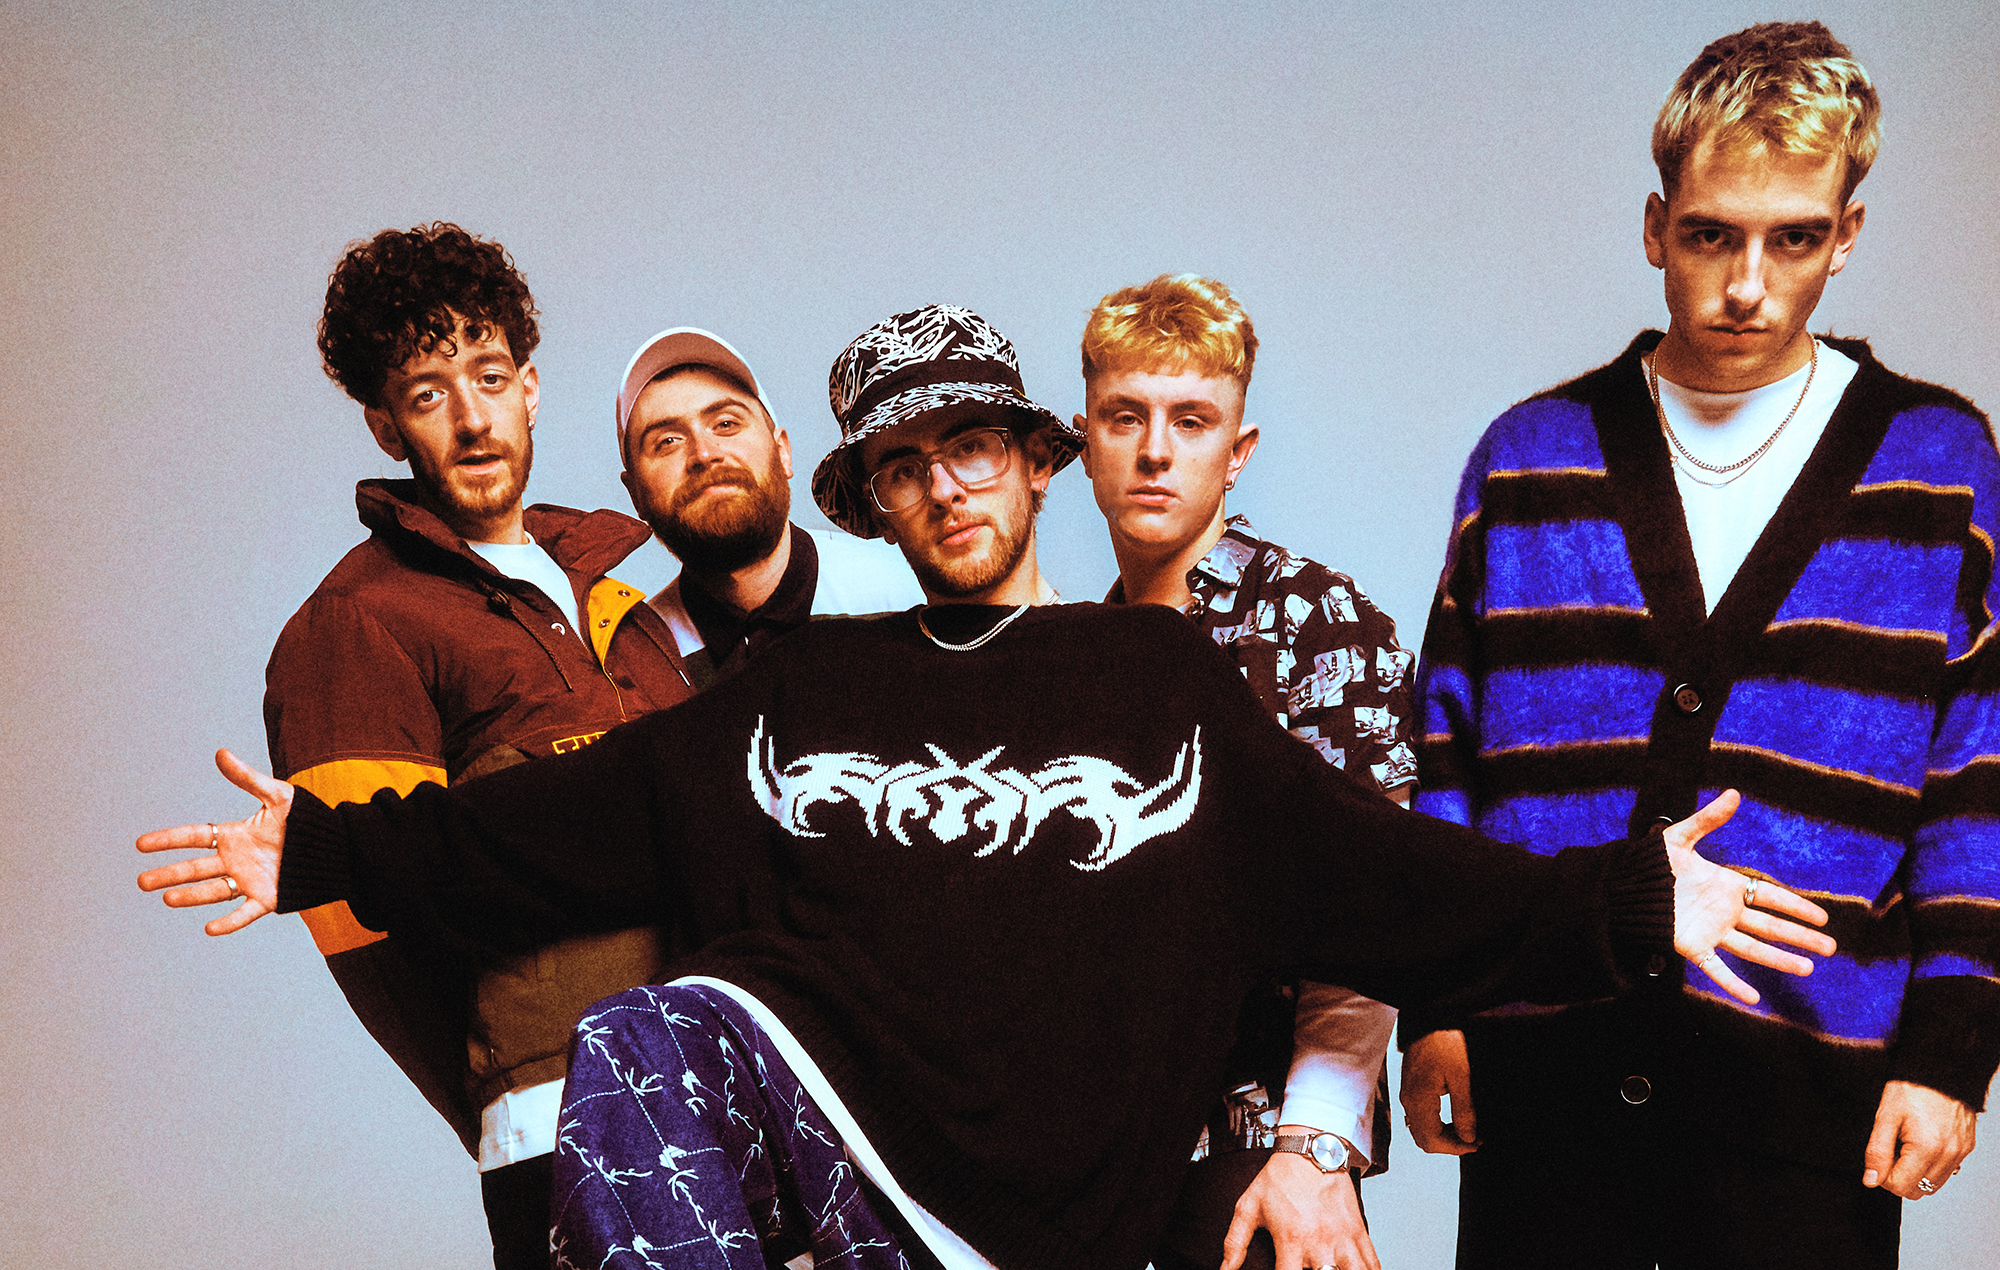 Easy Life share new track 'Pop Tarts' from two-track single 'who gives a f**k?', Shop Ticket Snatchers